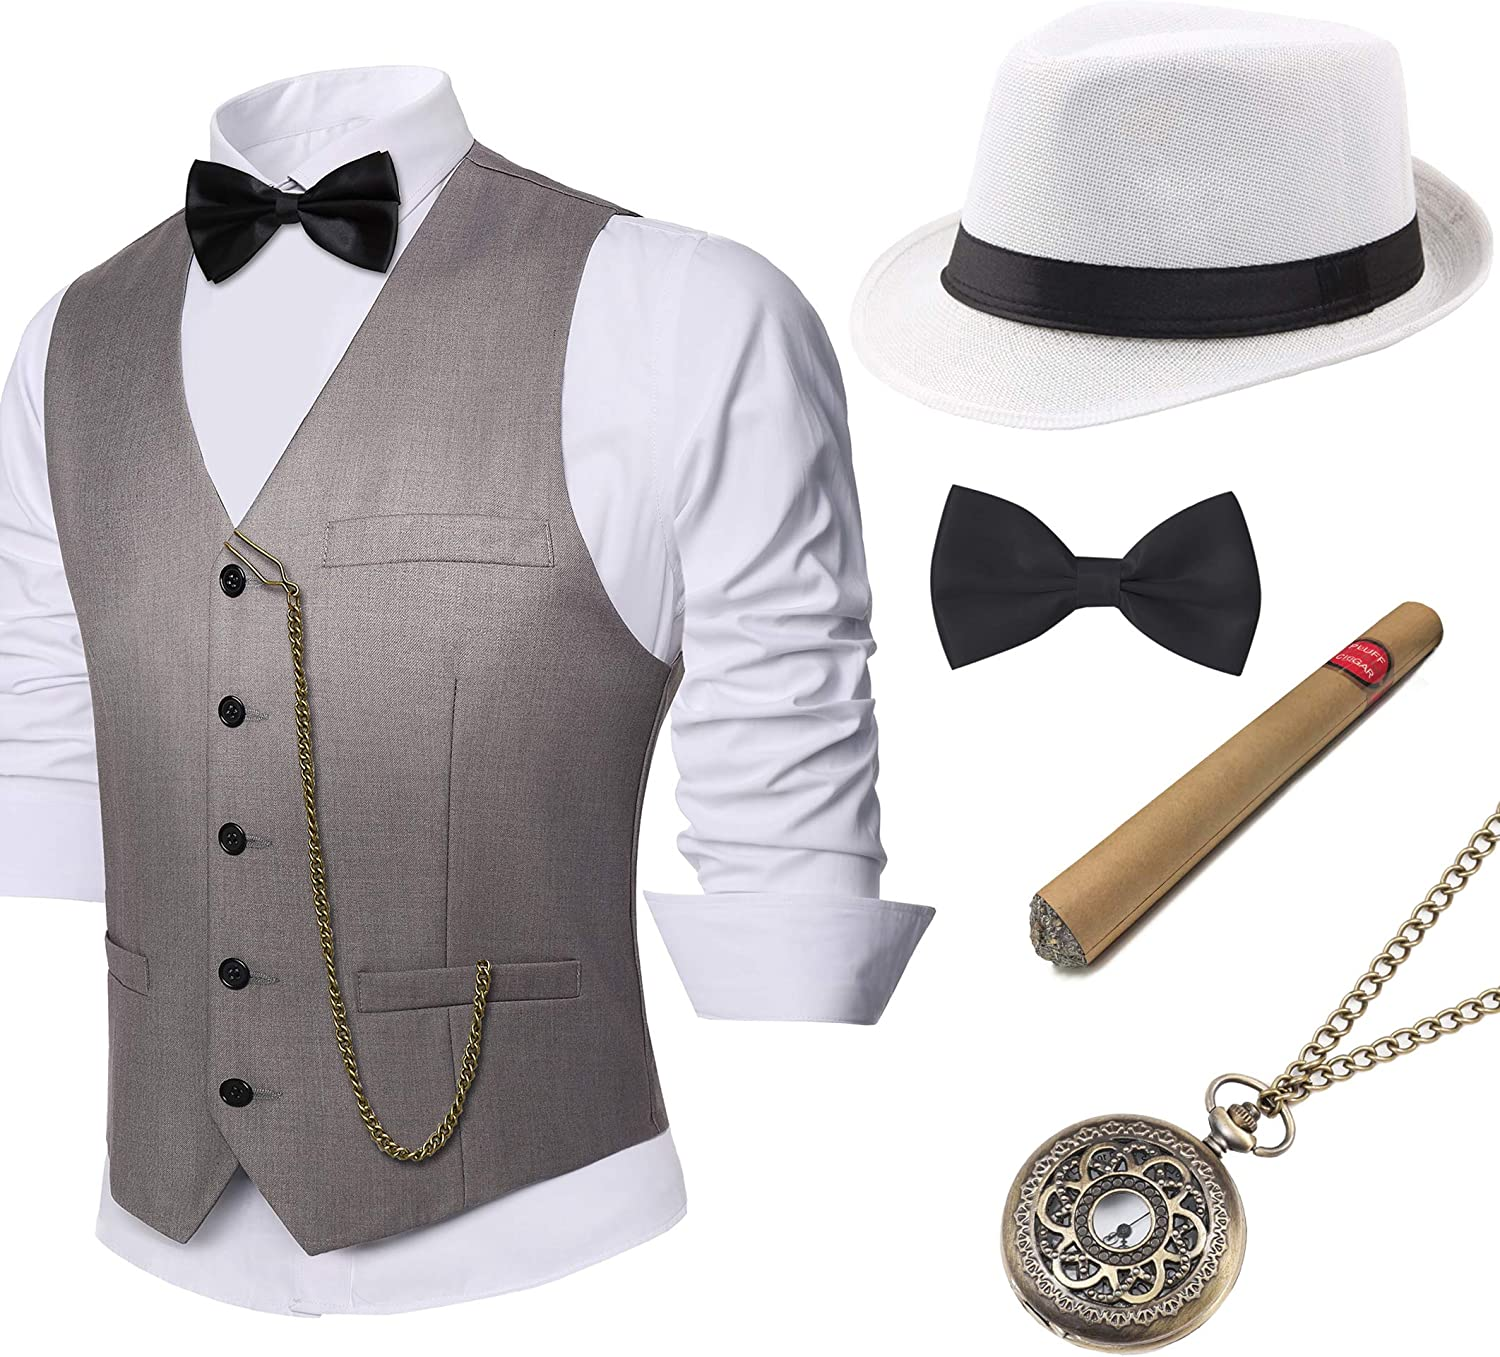 BABEYOND 1920s Mens Gatsby Gangster Vest Costume Accessories Set Fedora Hat